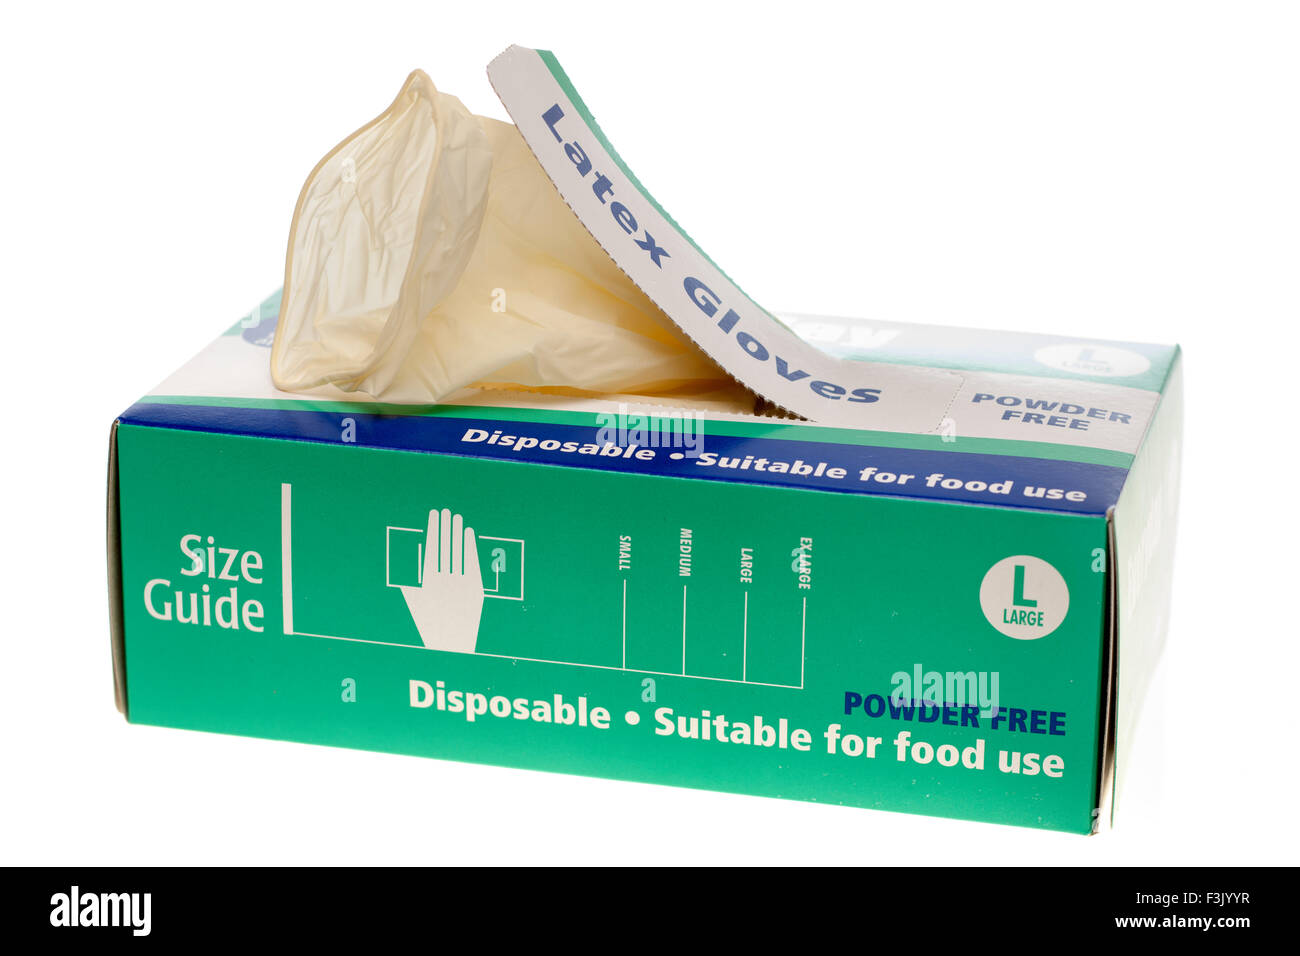 Box of 100 Everdayday powder free disposable latex gloves - Stock Image